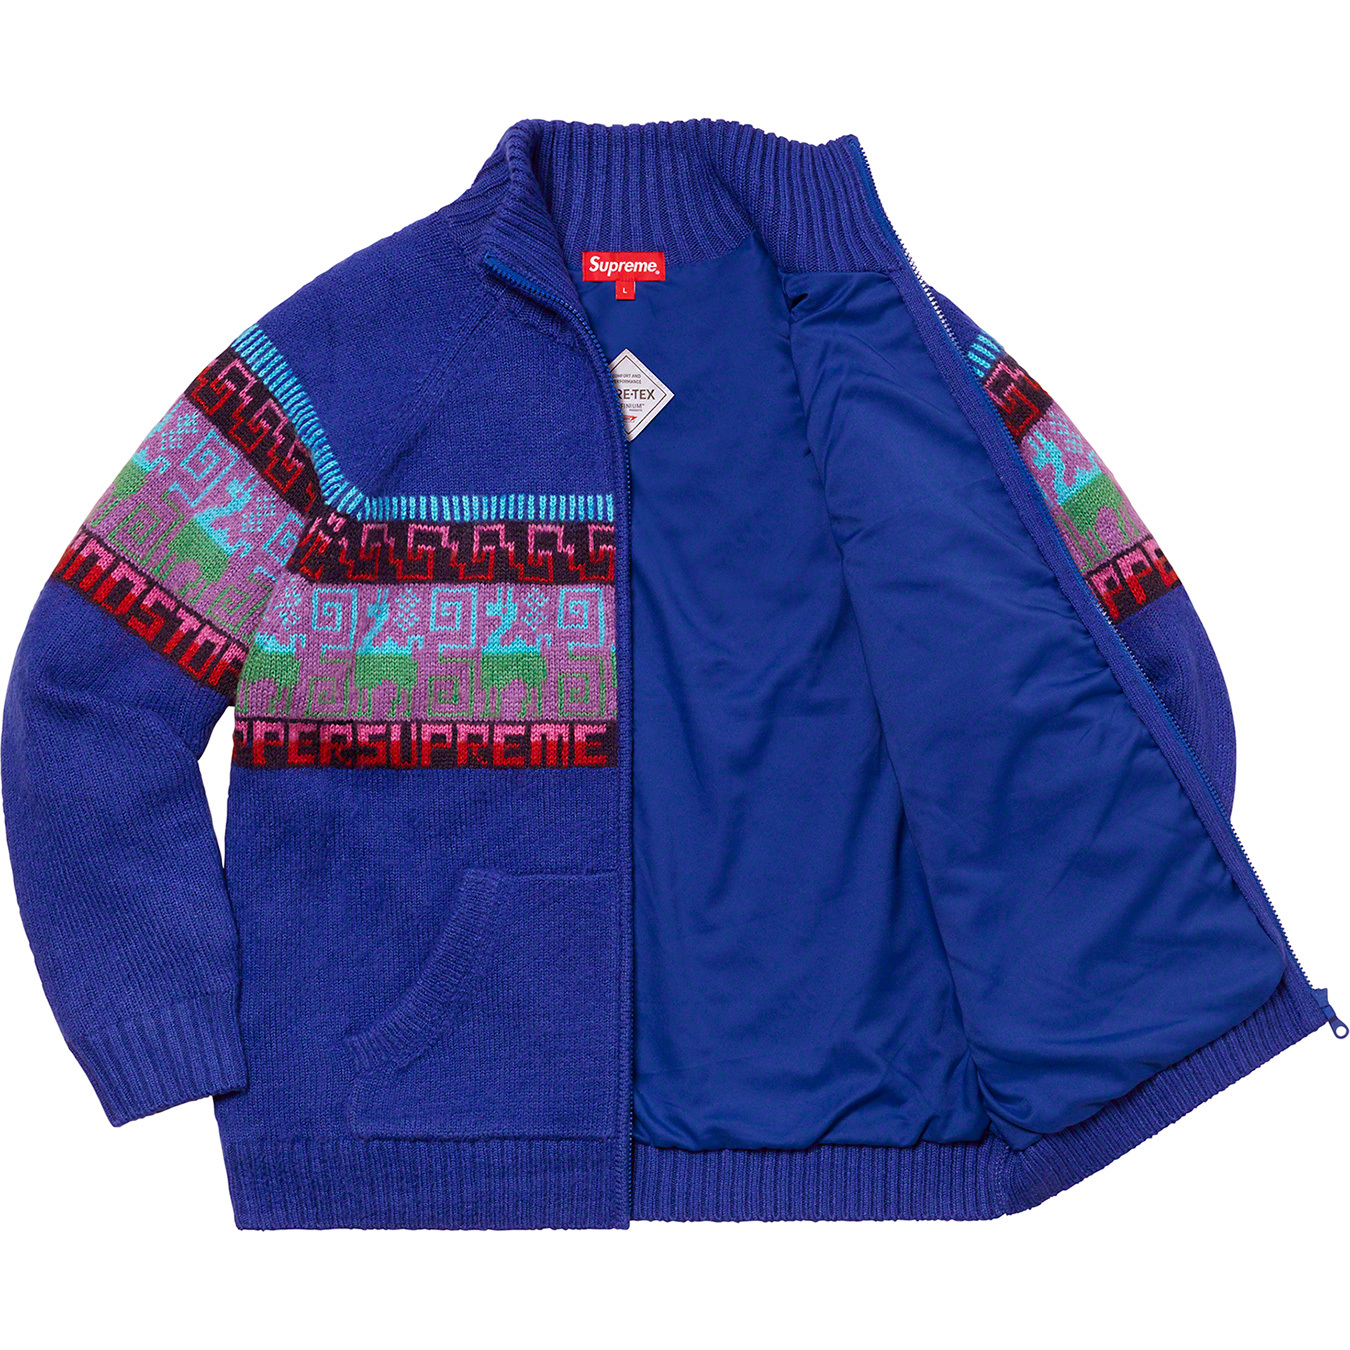 supreme-20aw-20fw-chullo-windstopper-zip-up-sweater